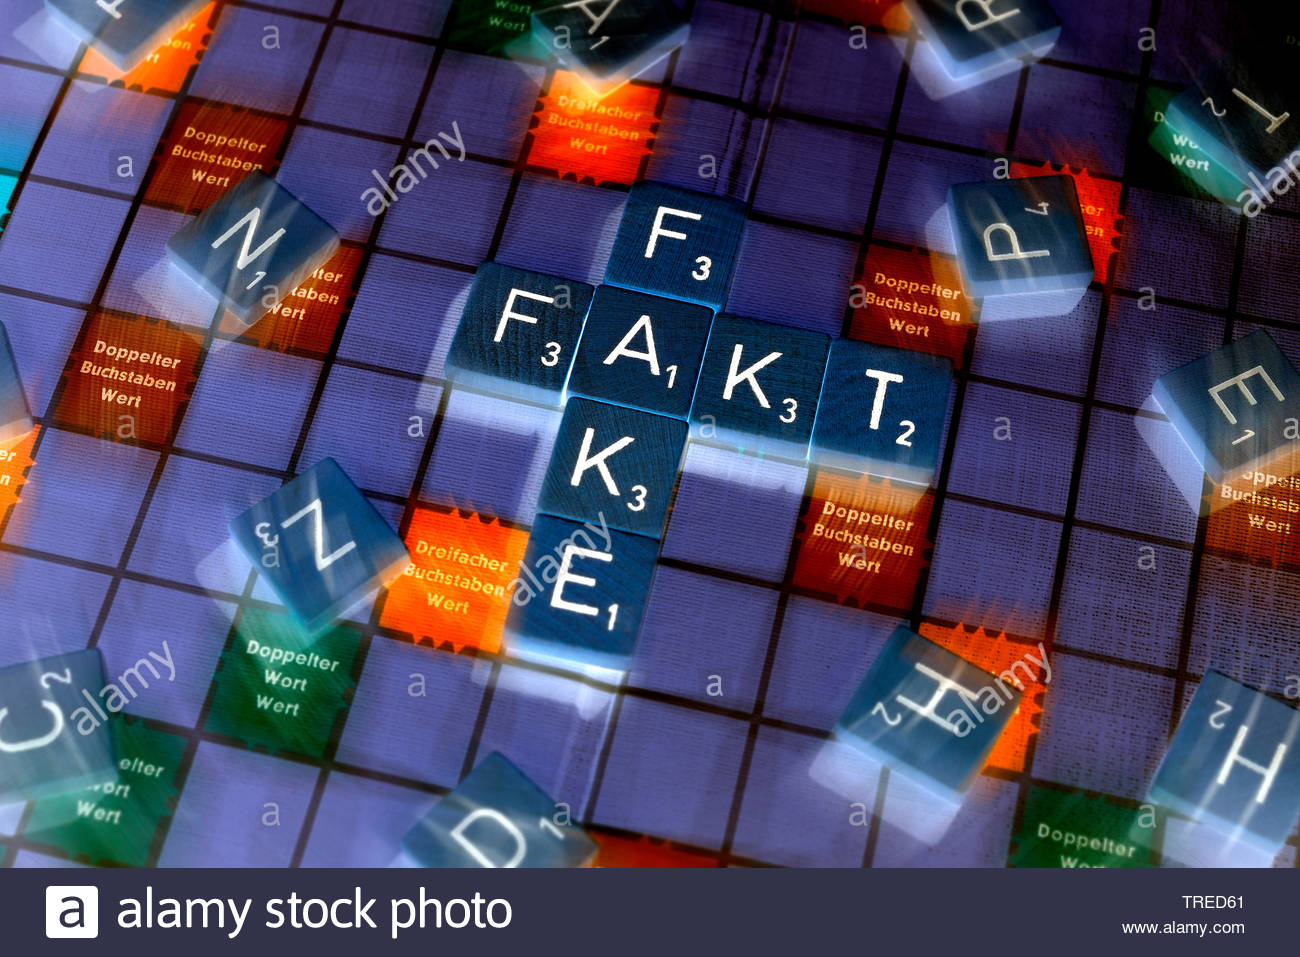 FAKE FAKT als Woerter in einem Scrabble Spiel dargestellt | FAKE FAKT (fake fact) shown as letters on a scrabble play board | BLWS523415.jpg [ (c) bli - Stock Image